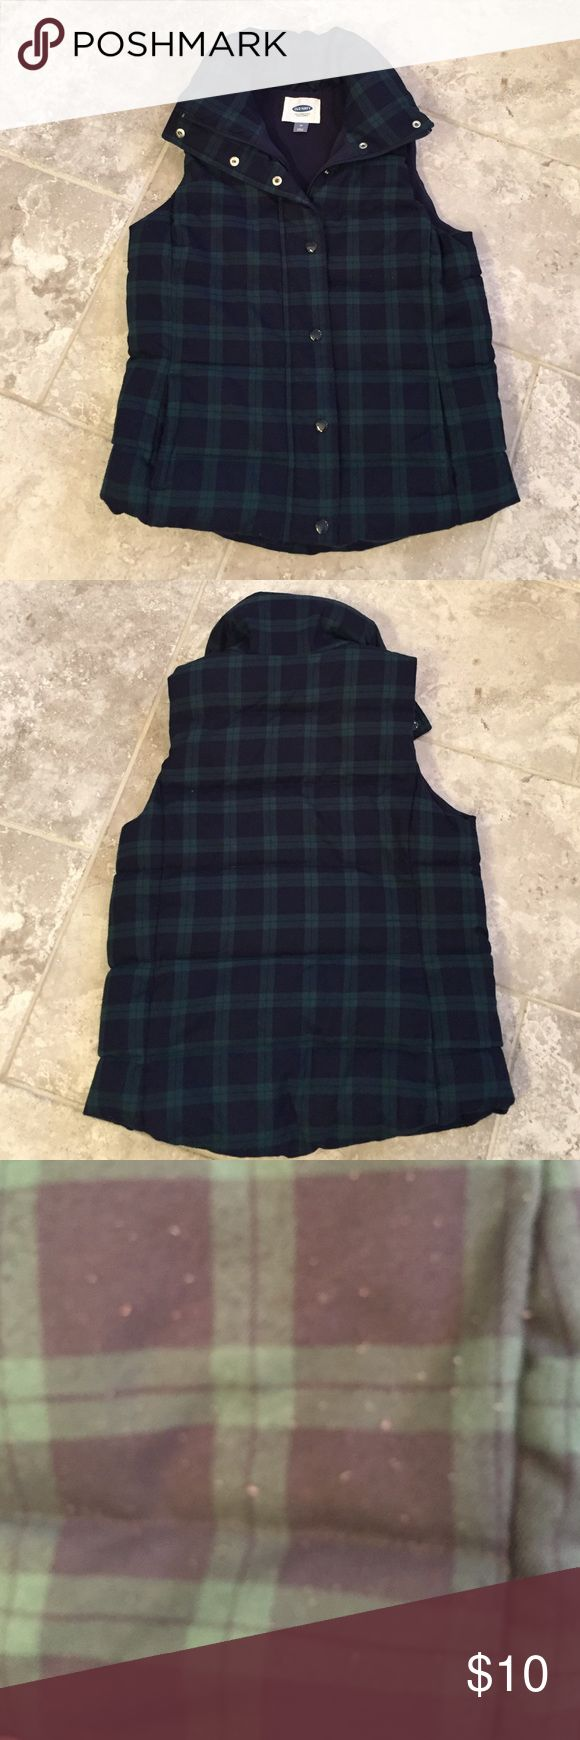 Plaid Green and Blue Old Navy Vest Plaid Green and Blue Old Navy Vest. Has slight wear on the front (see photo). Old Navy Jackets & Coats Vests